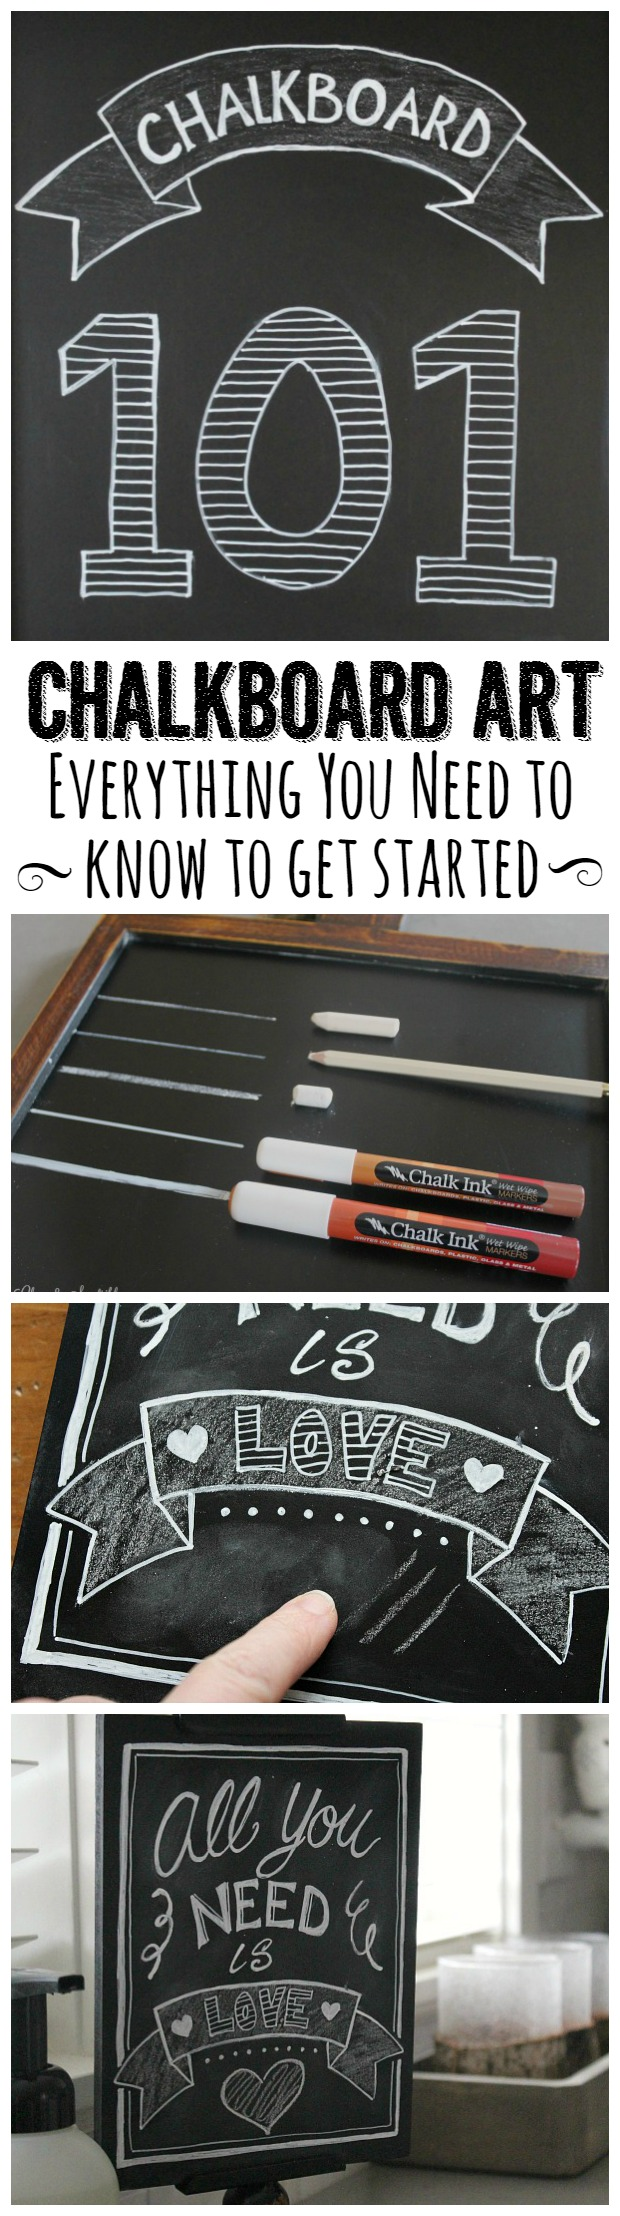 Awesome tips to help you get started on your own chalkboard art.